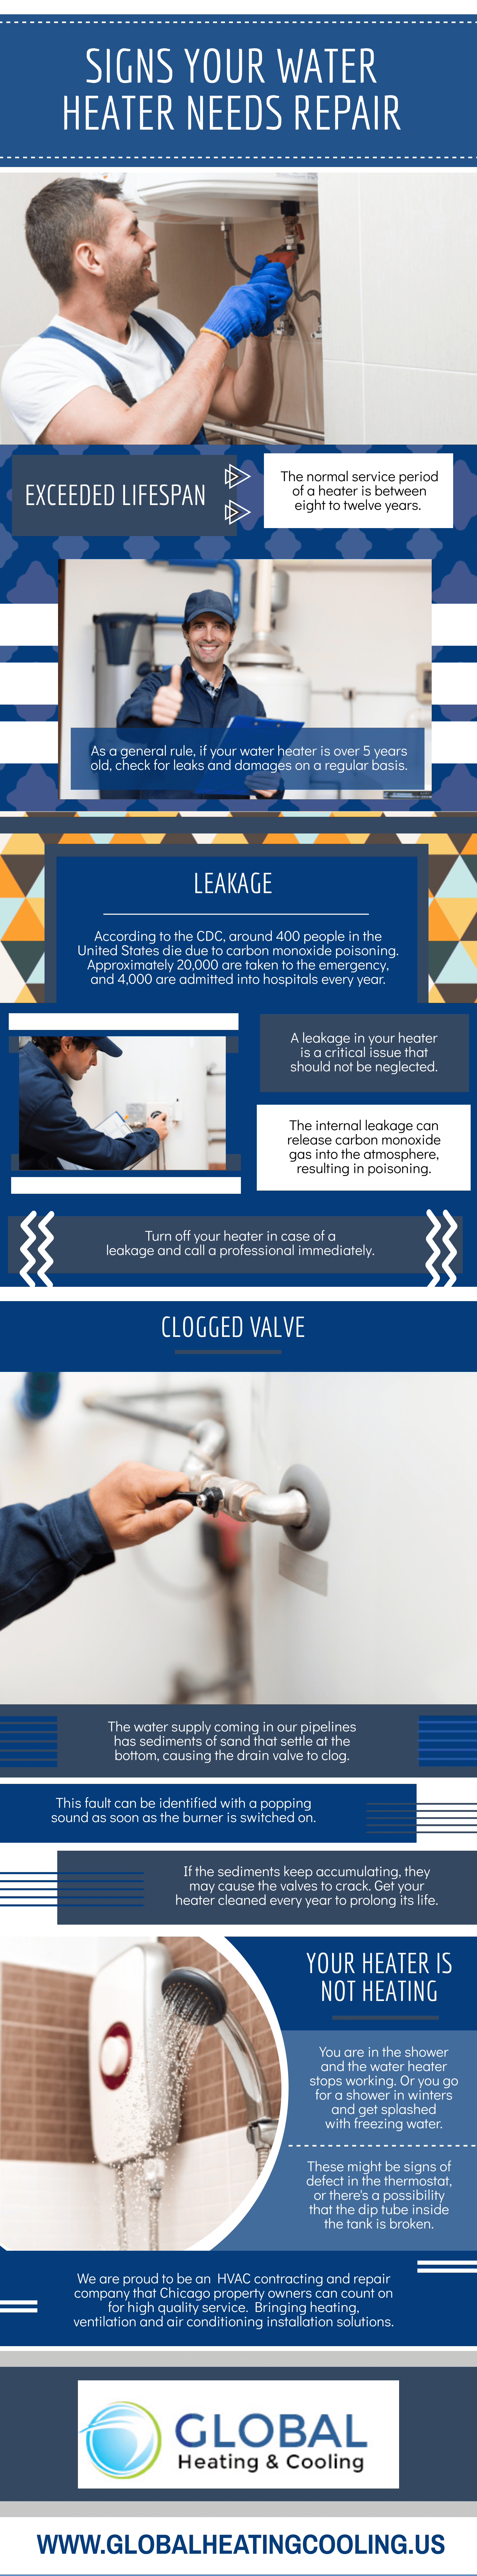 Signs Your Water Heater Needs Repair